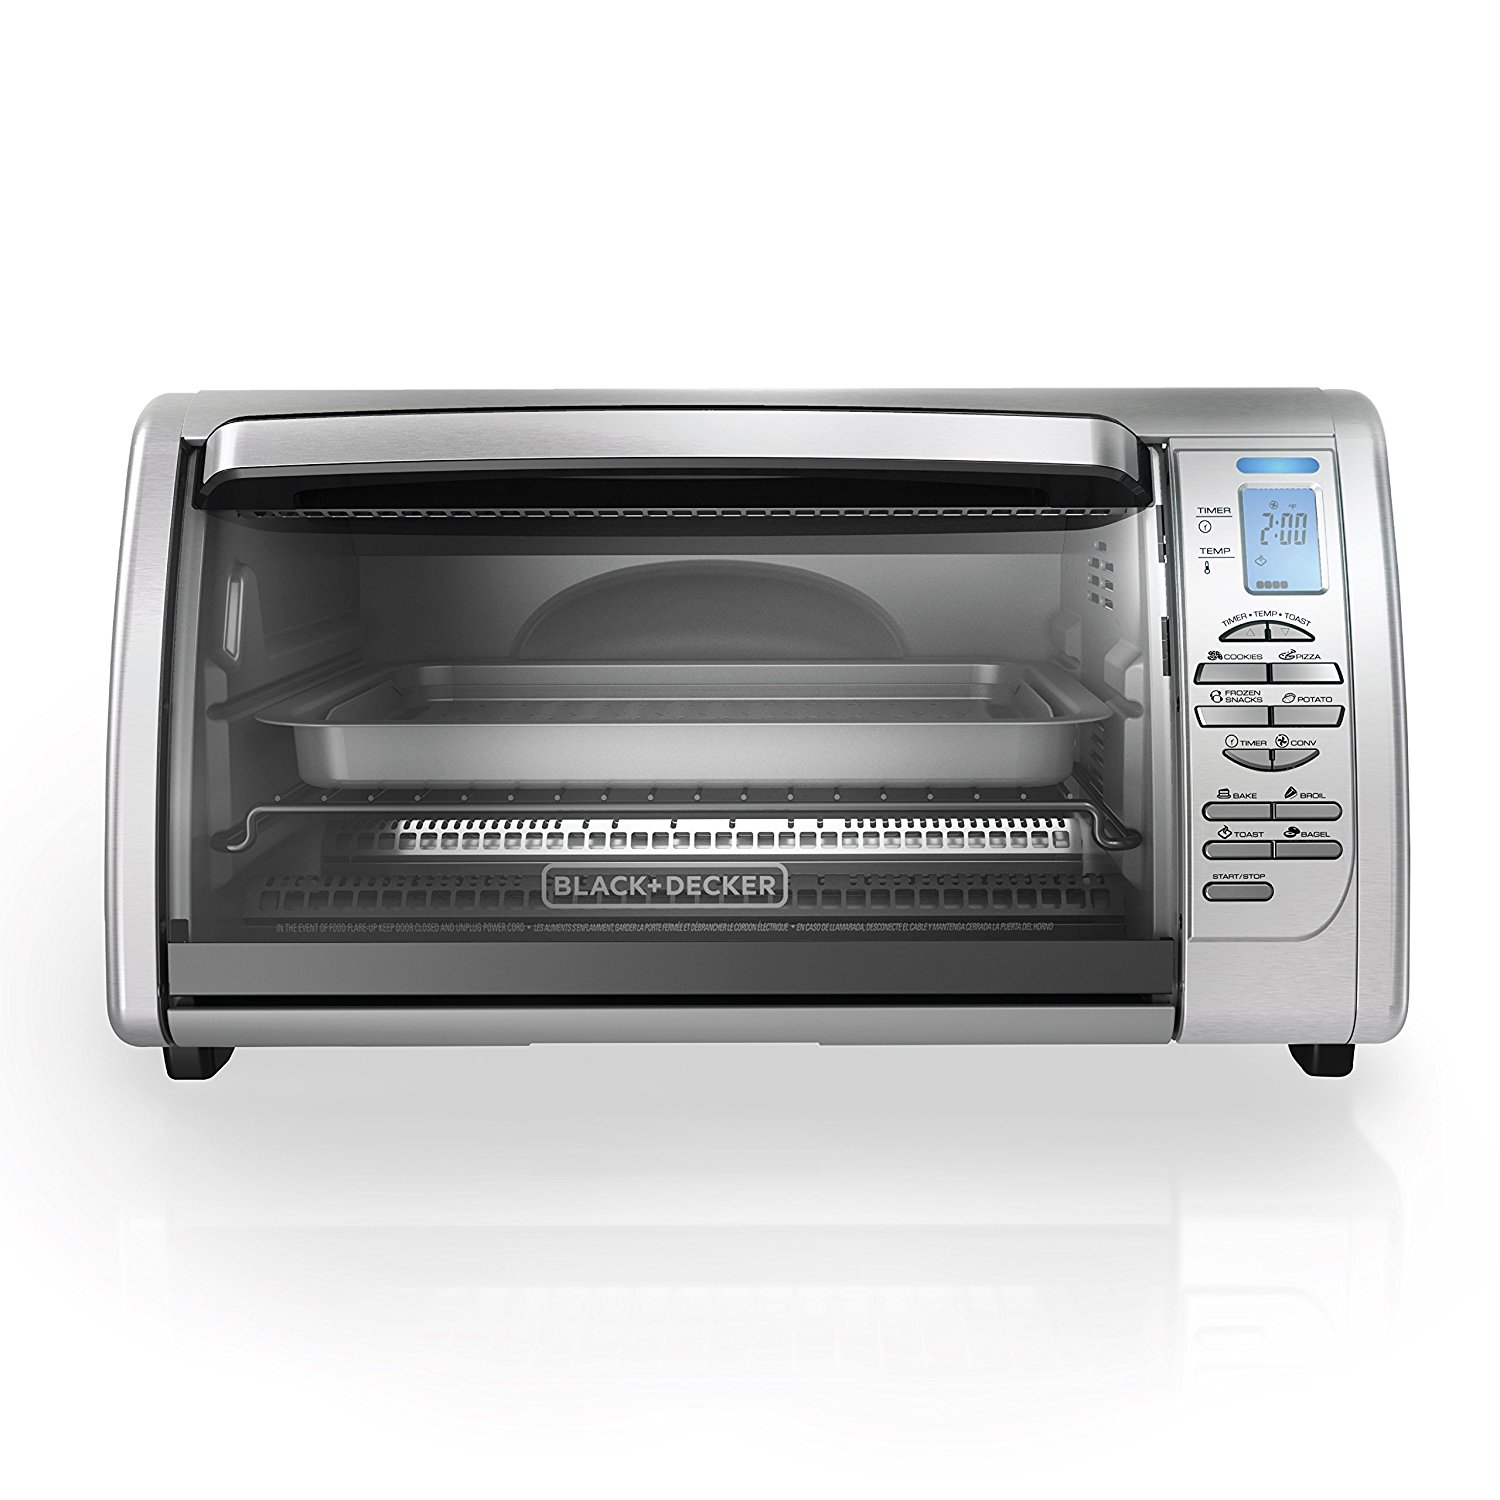 BLACK+DECKER CTO6335S 6-Slice Digital Convection Countertop Toaster Oven, Includes Bake